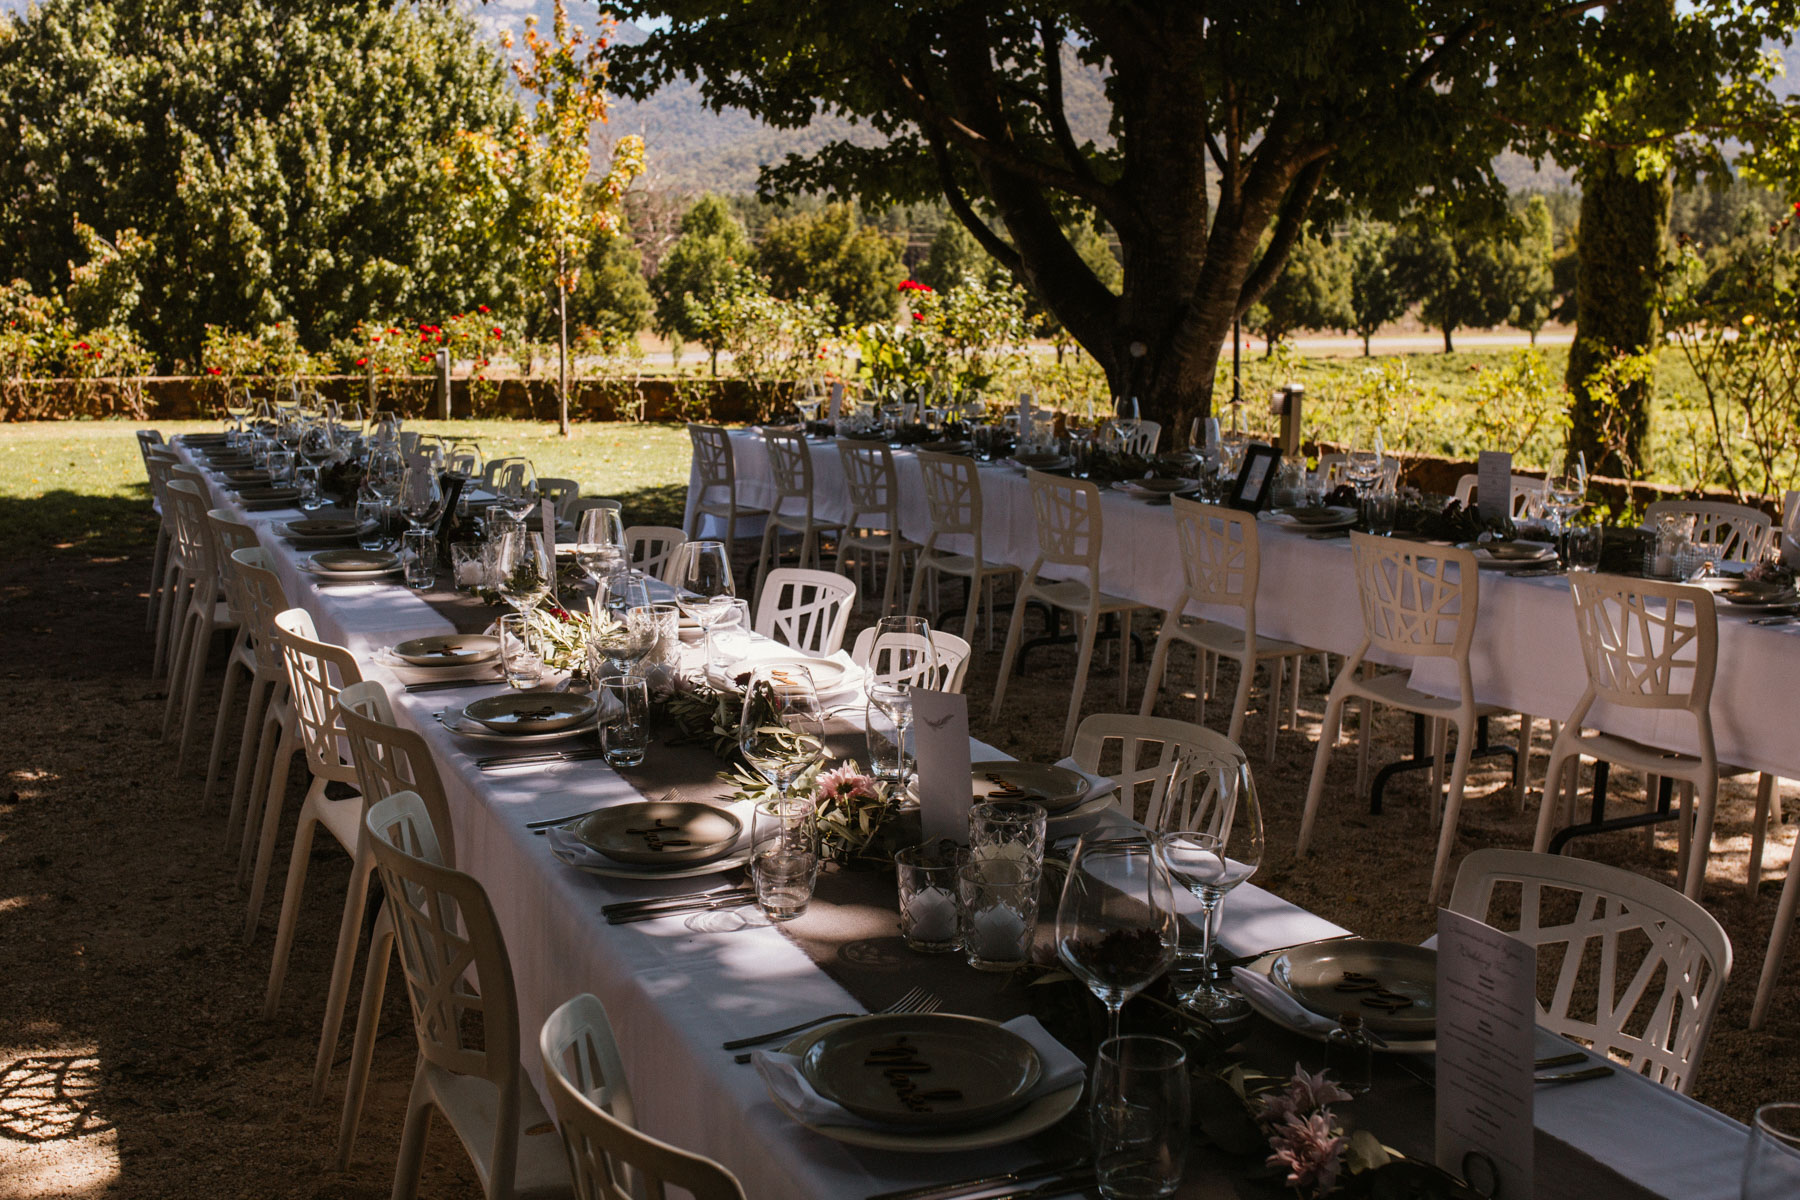 KJ Featherop Winery Wedding Bright-Dean Raphael Weddings-6.jpg